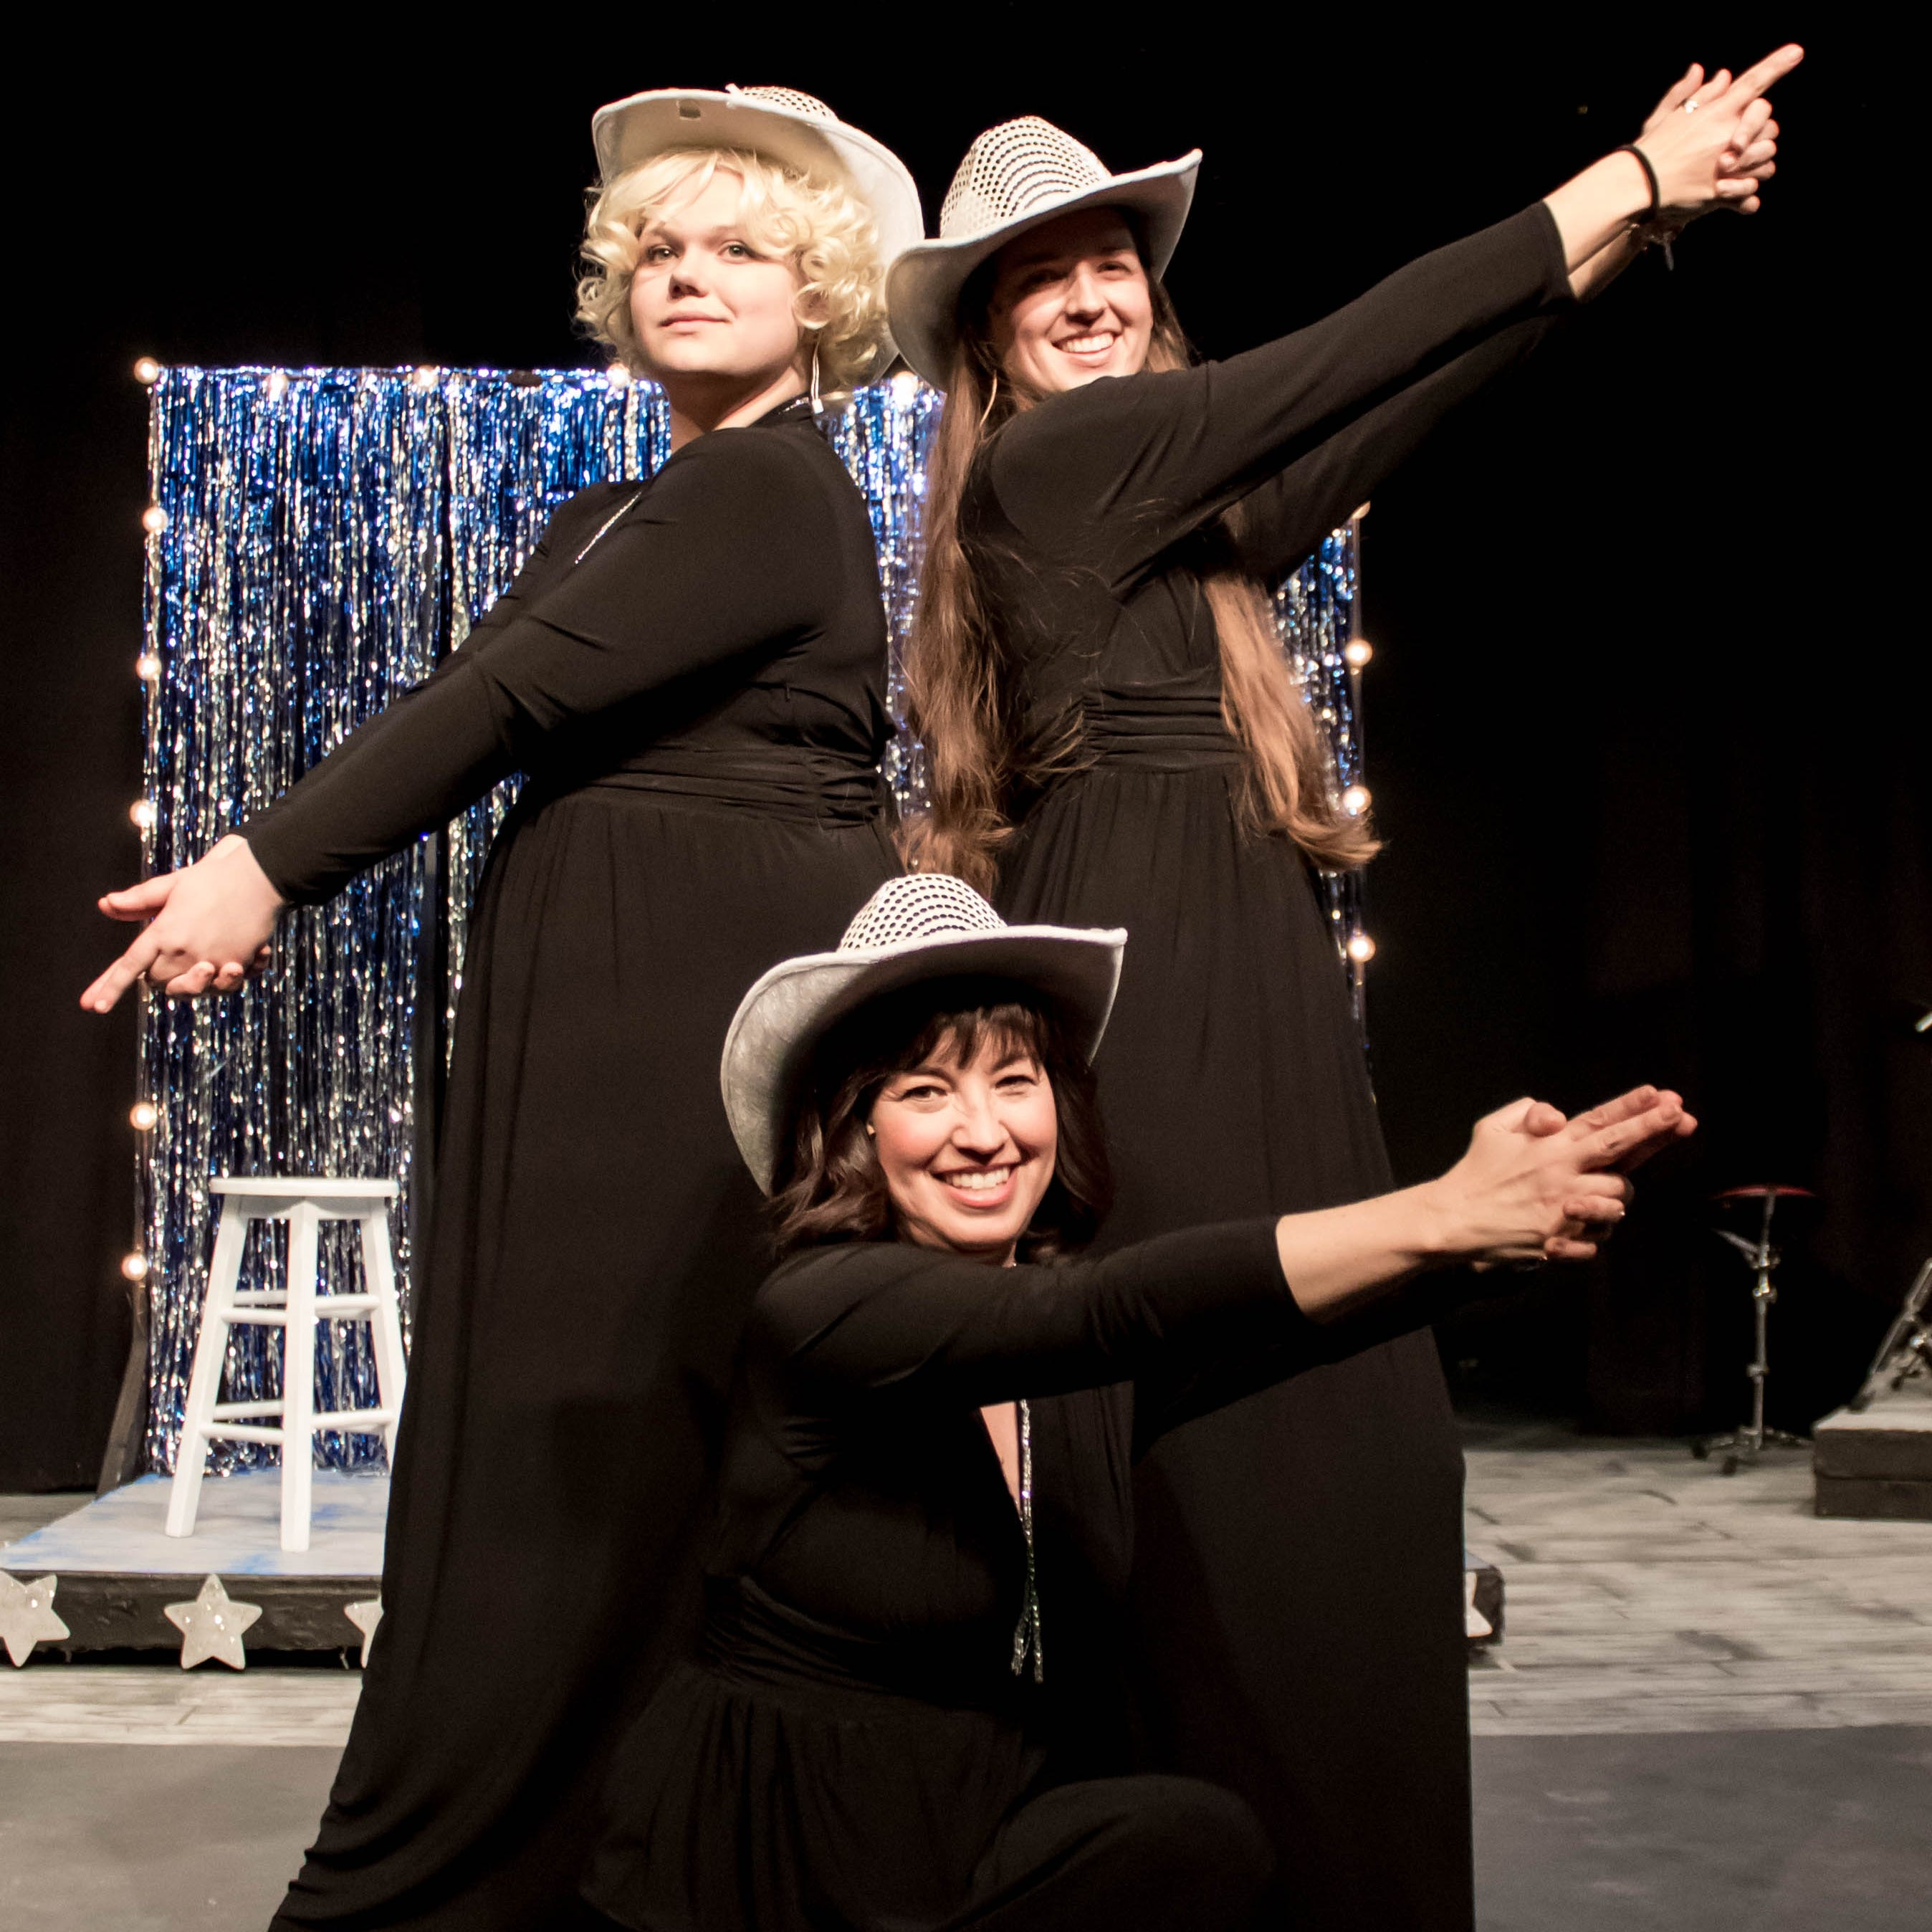 Visalia Players celebrate country music with 'Honky-Tonk Angels'